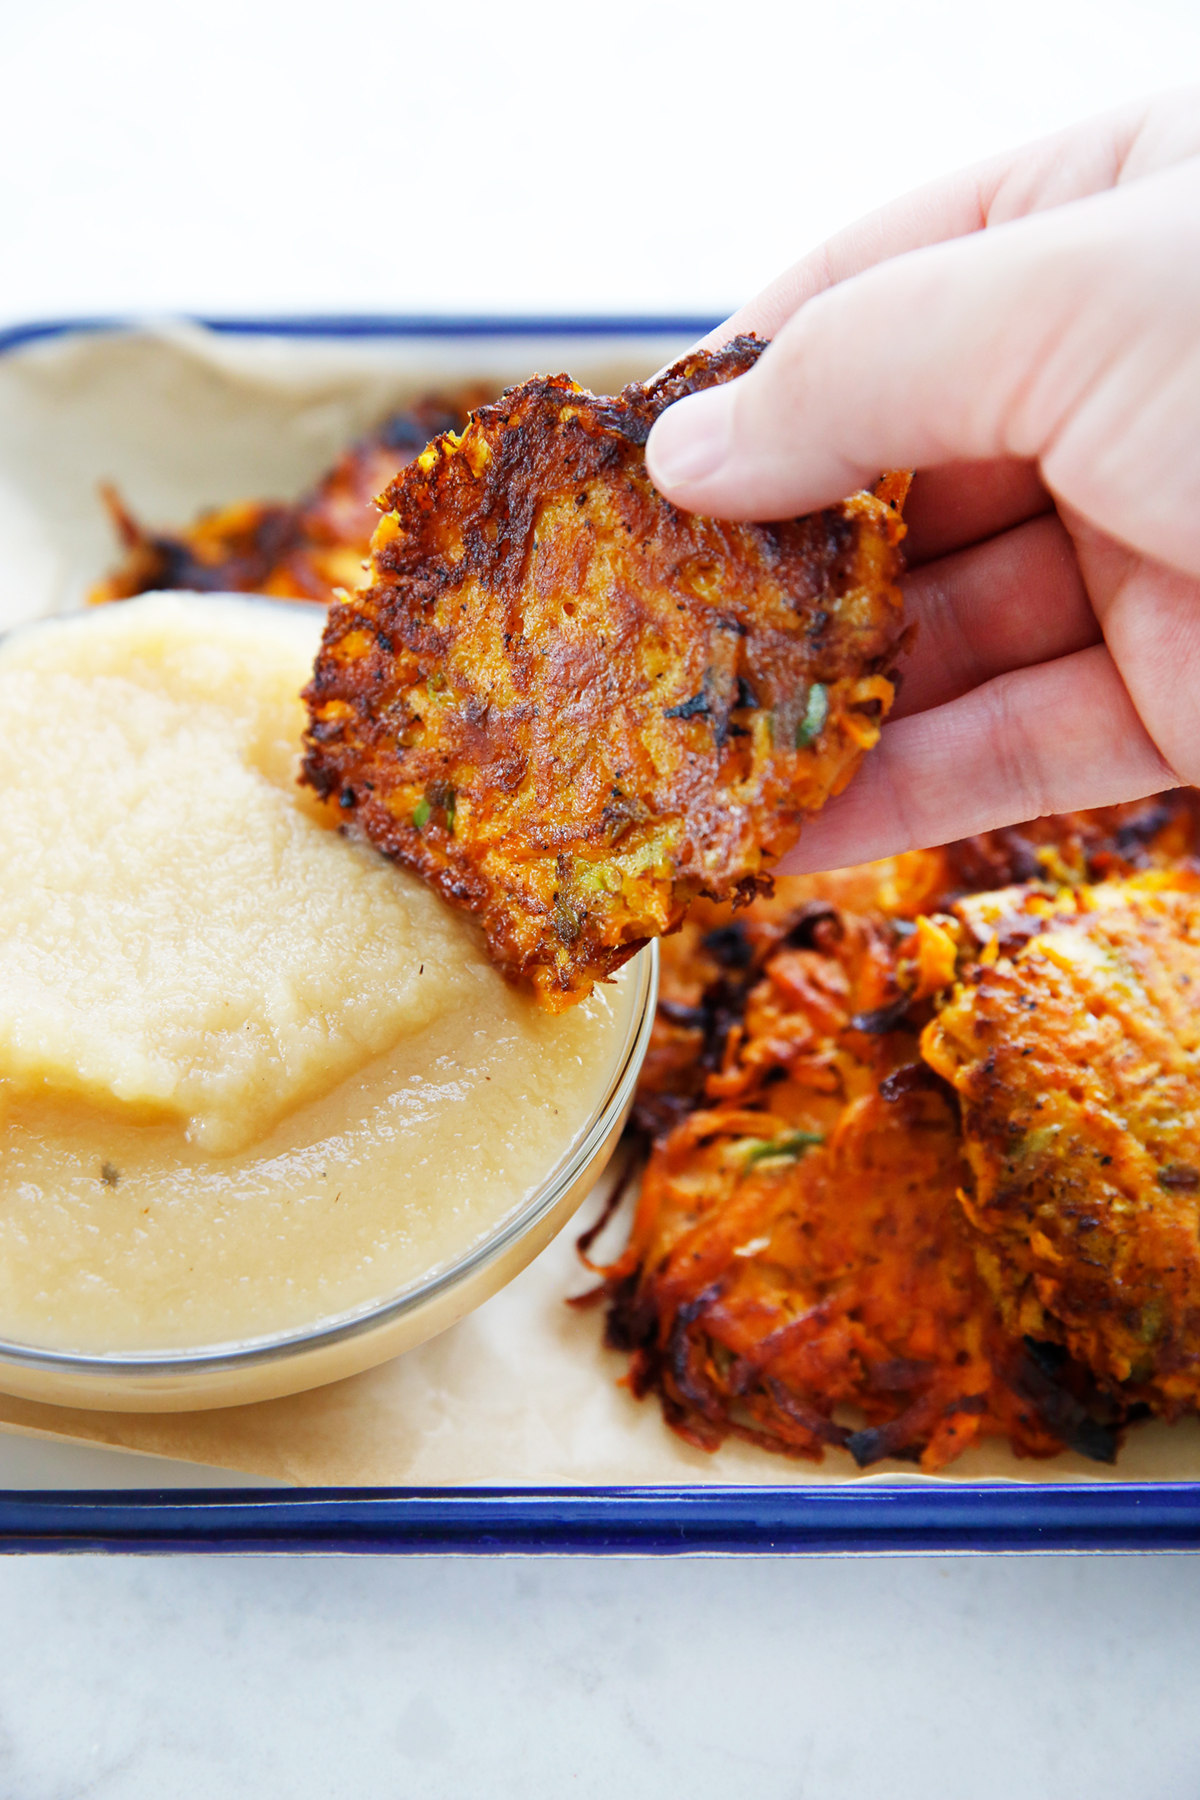 Healthy sweet potato latkes dipped in apple sauce.